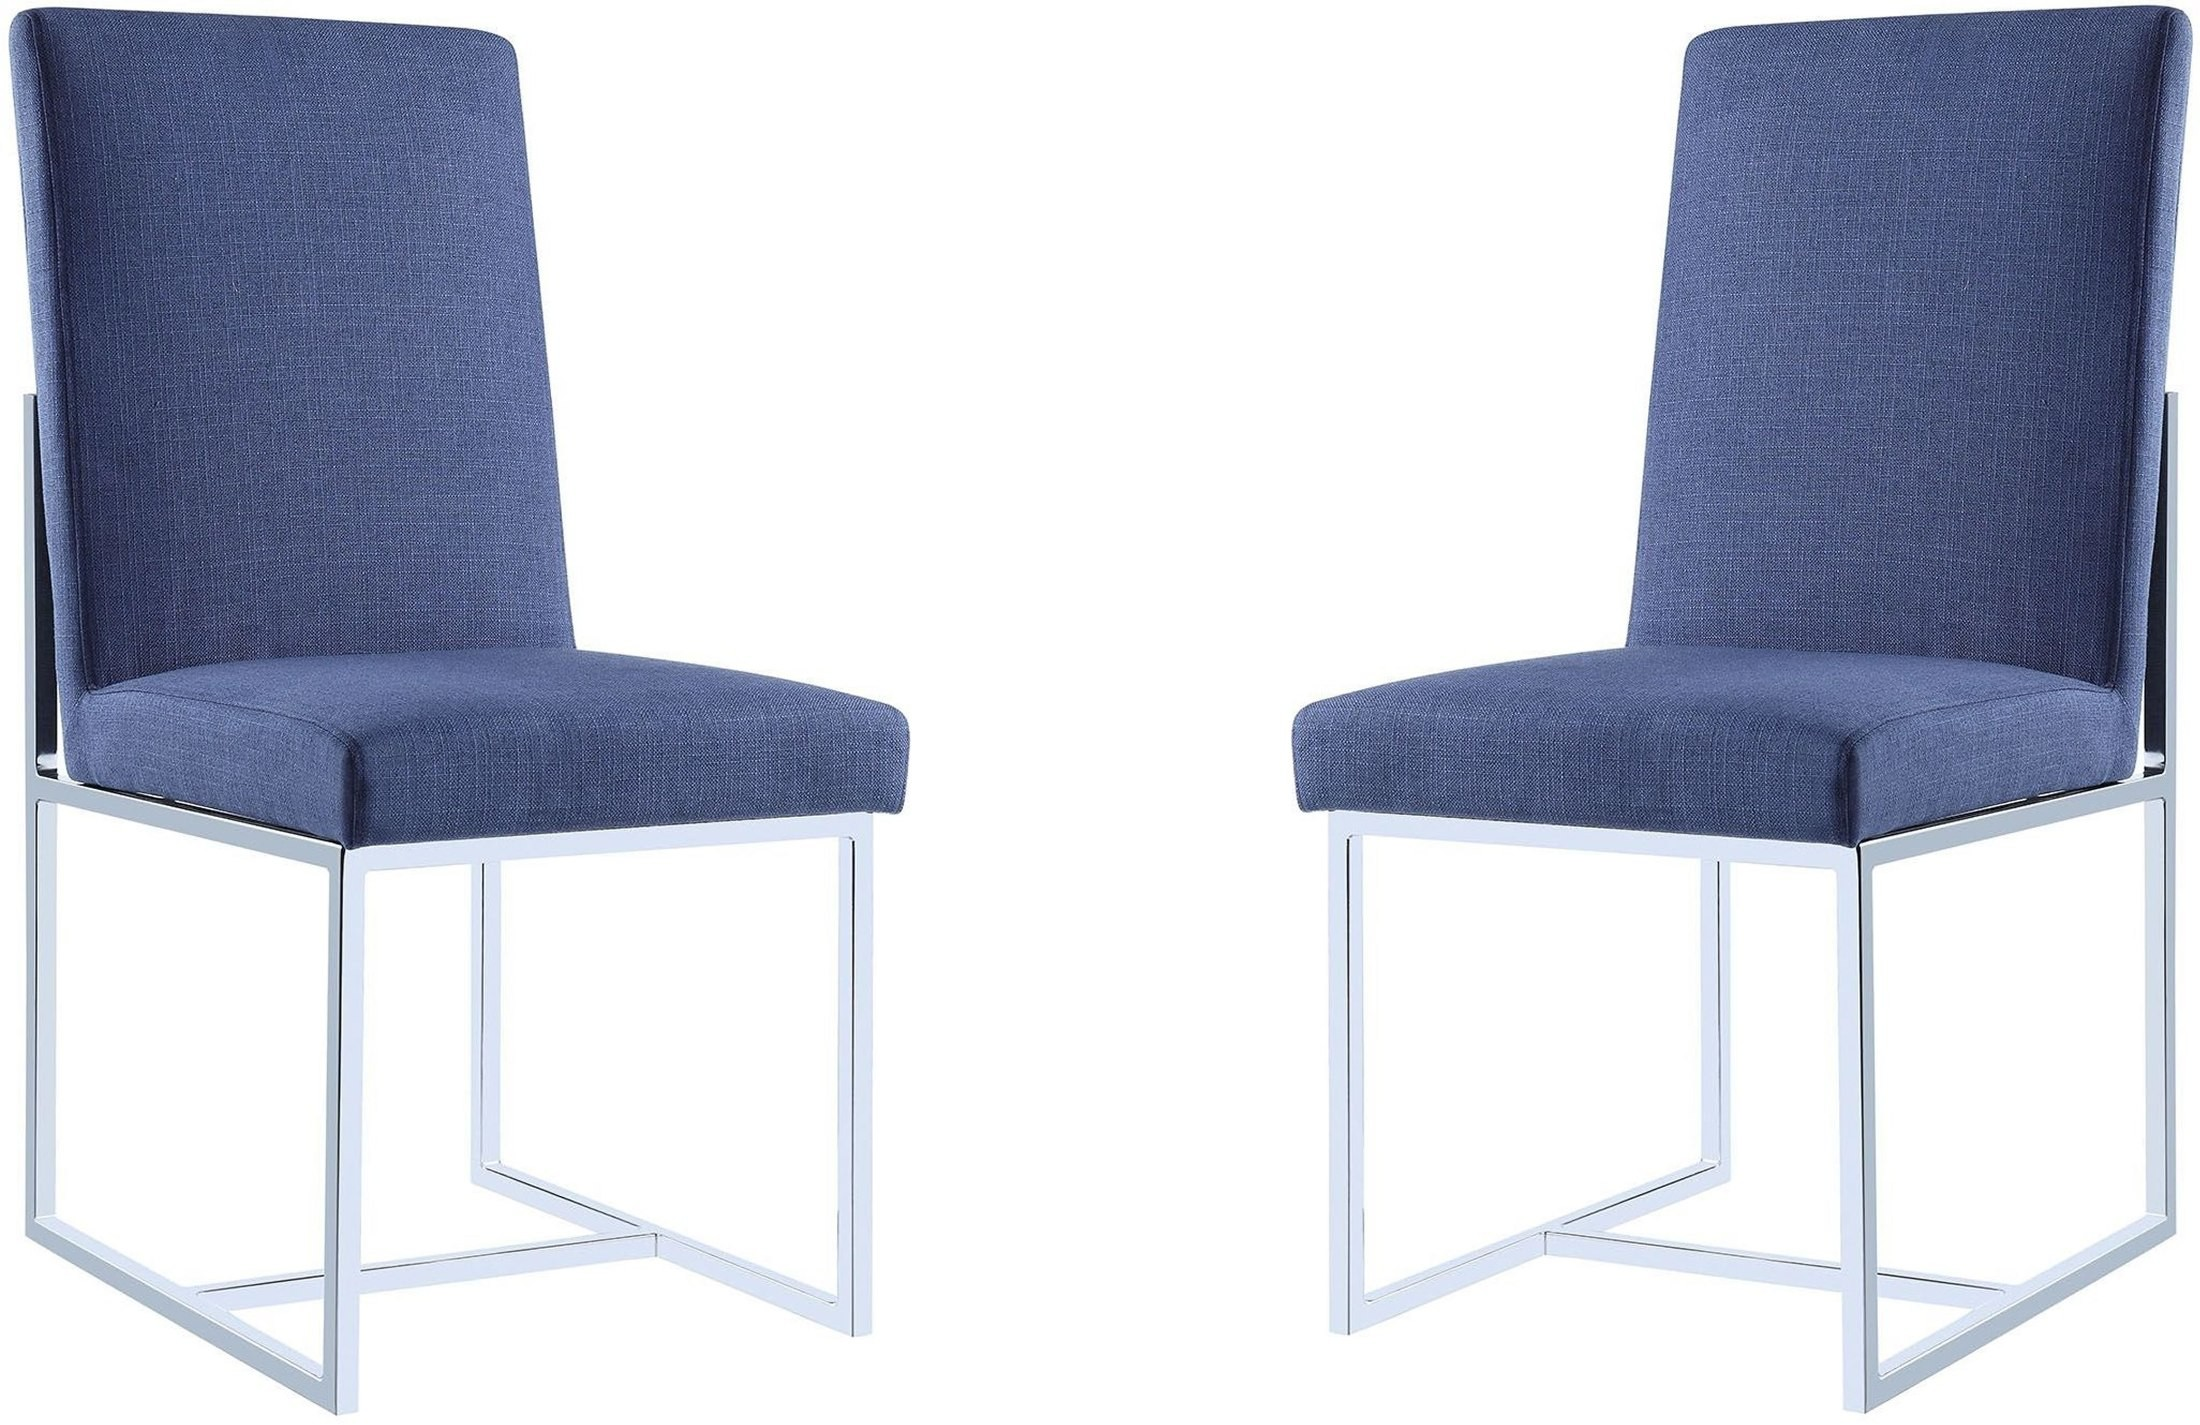 of room luxury chairs furniture navy blue alliancemv chair dining